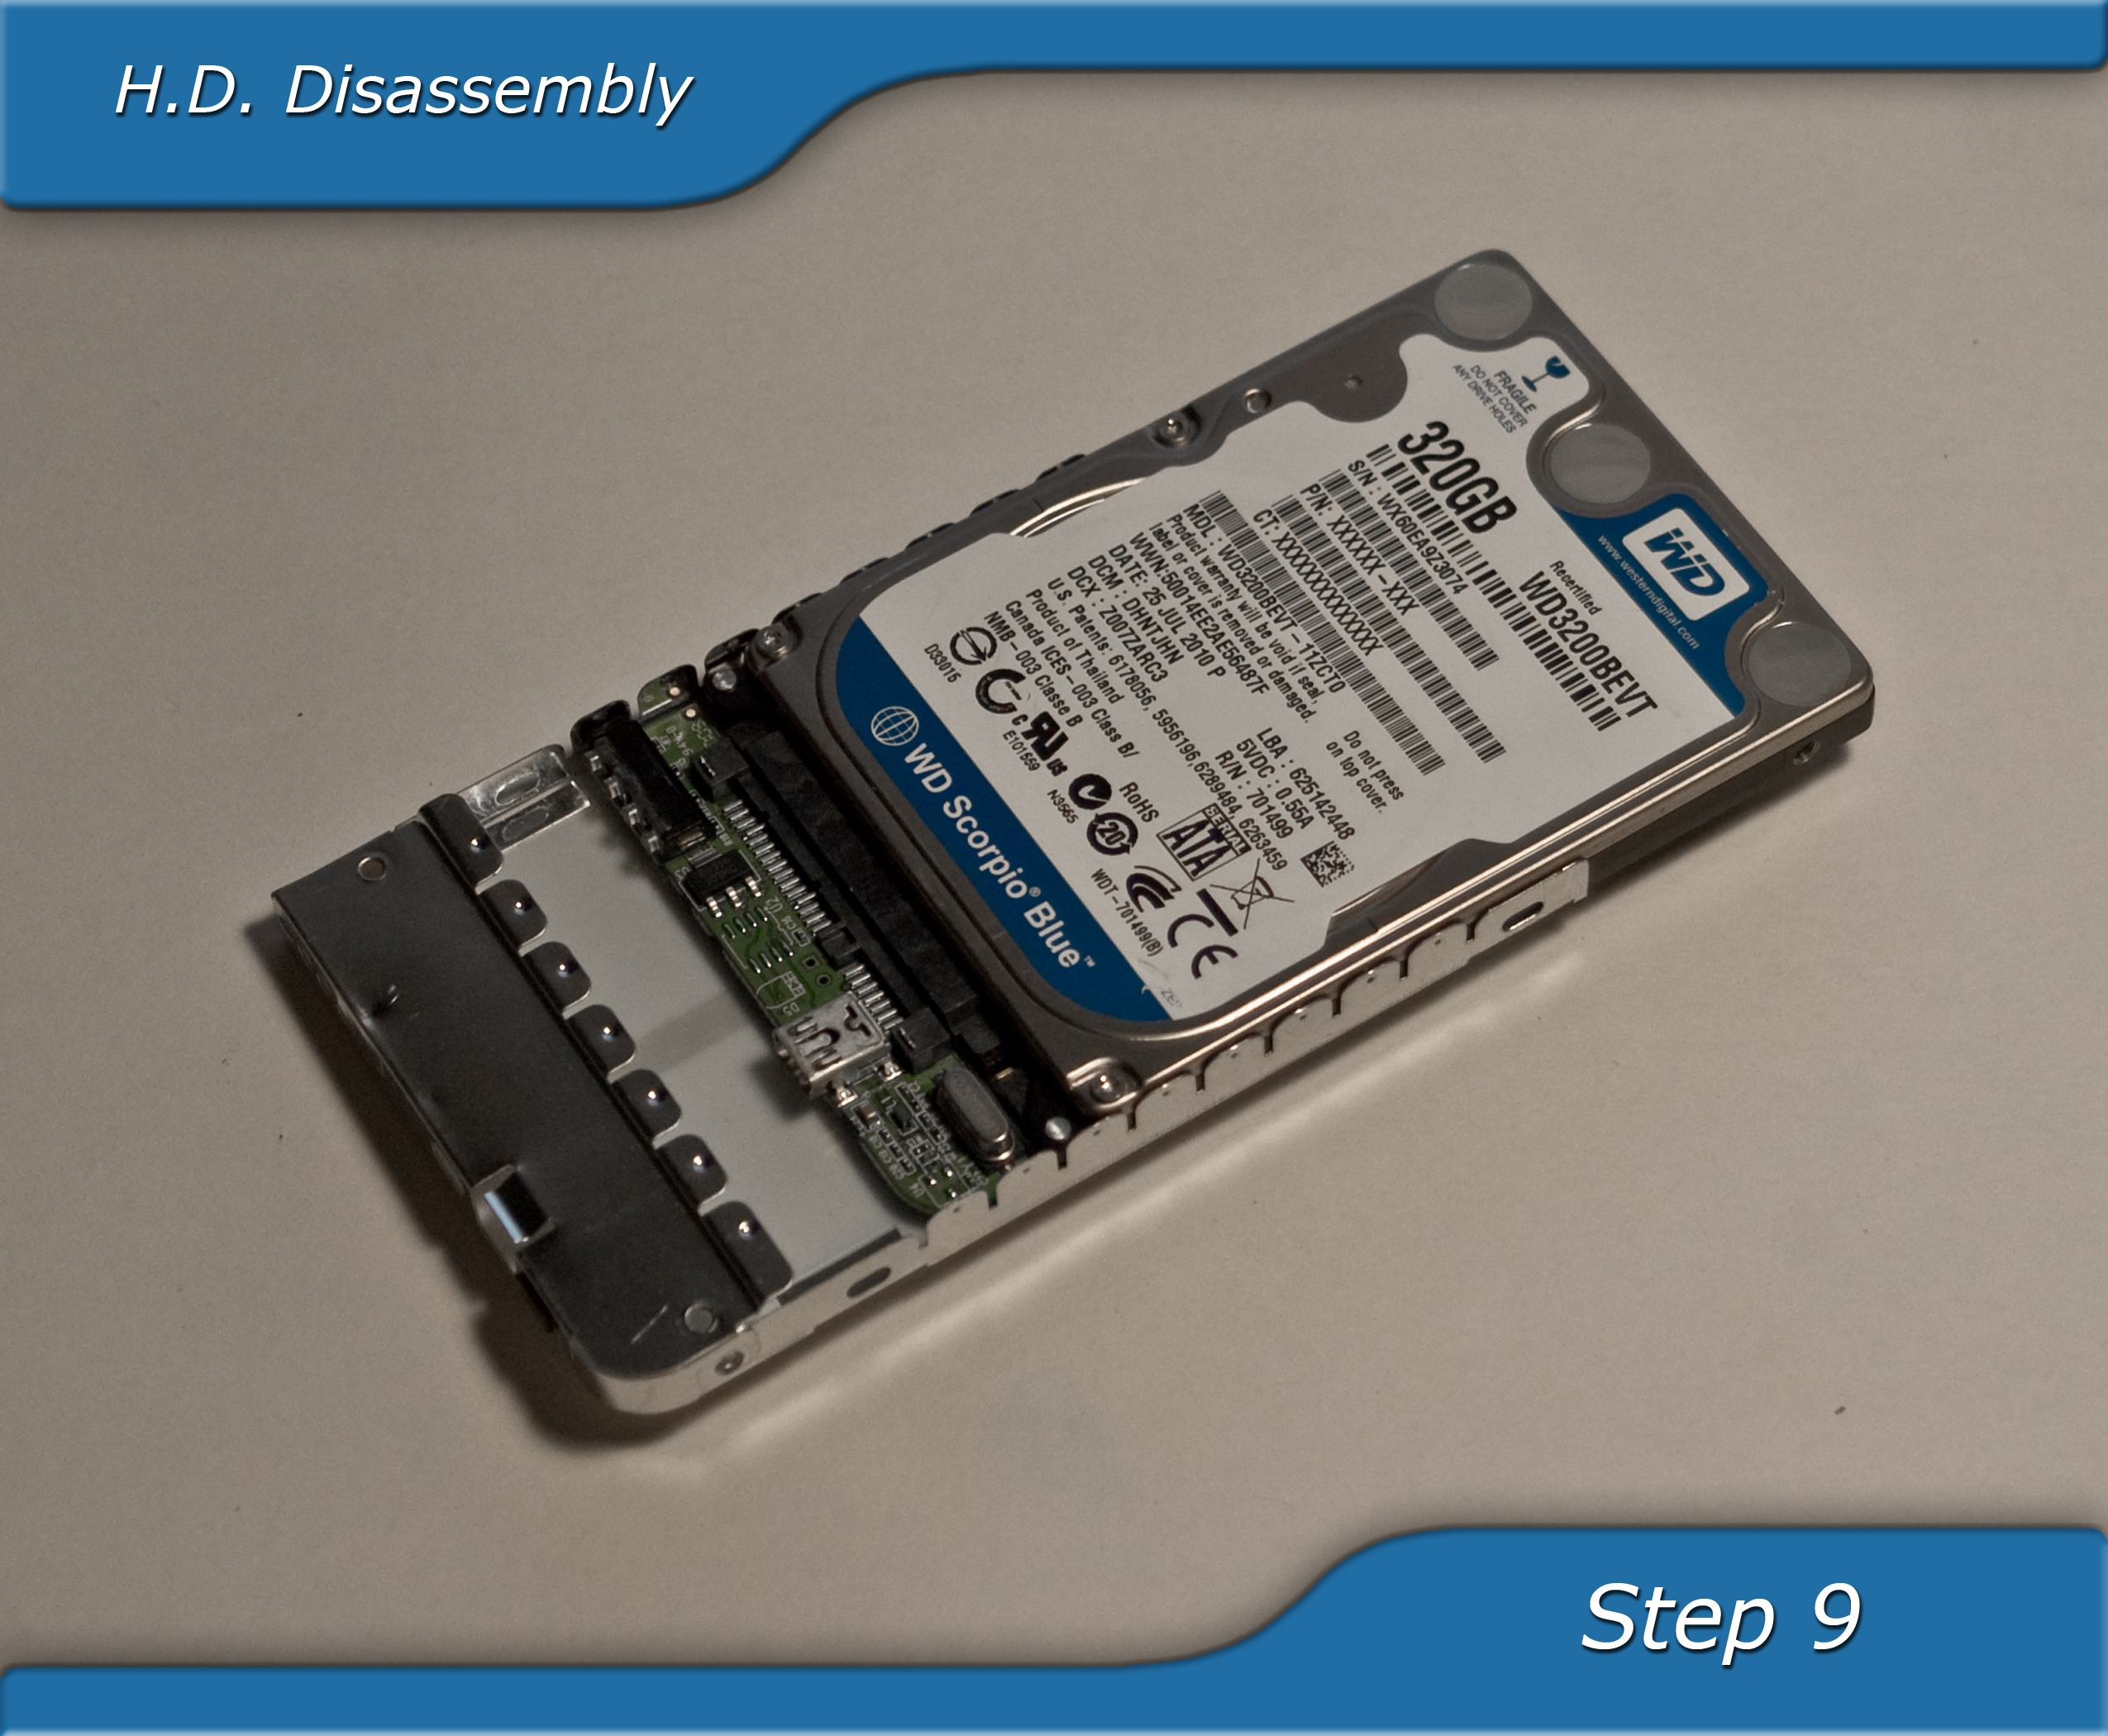 Picture of Hard Drive Disassembly